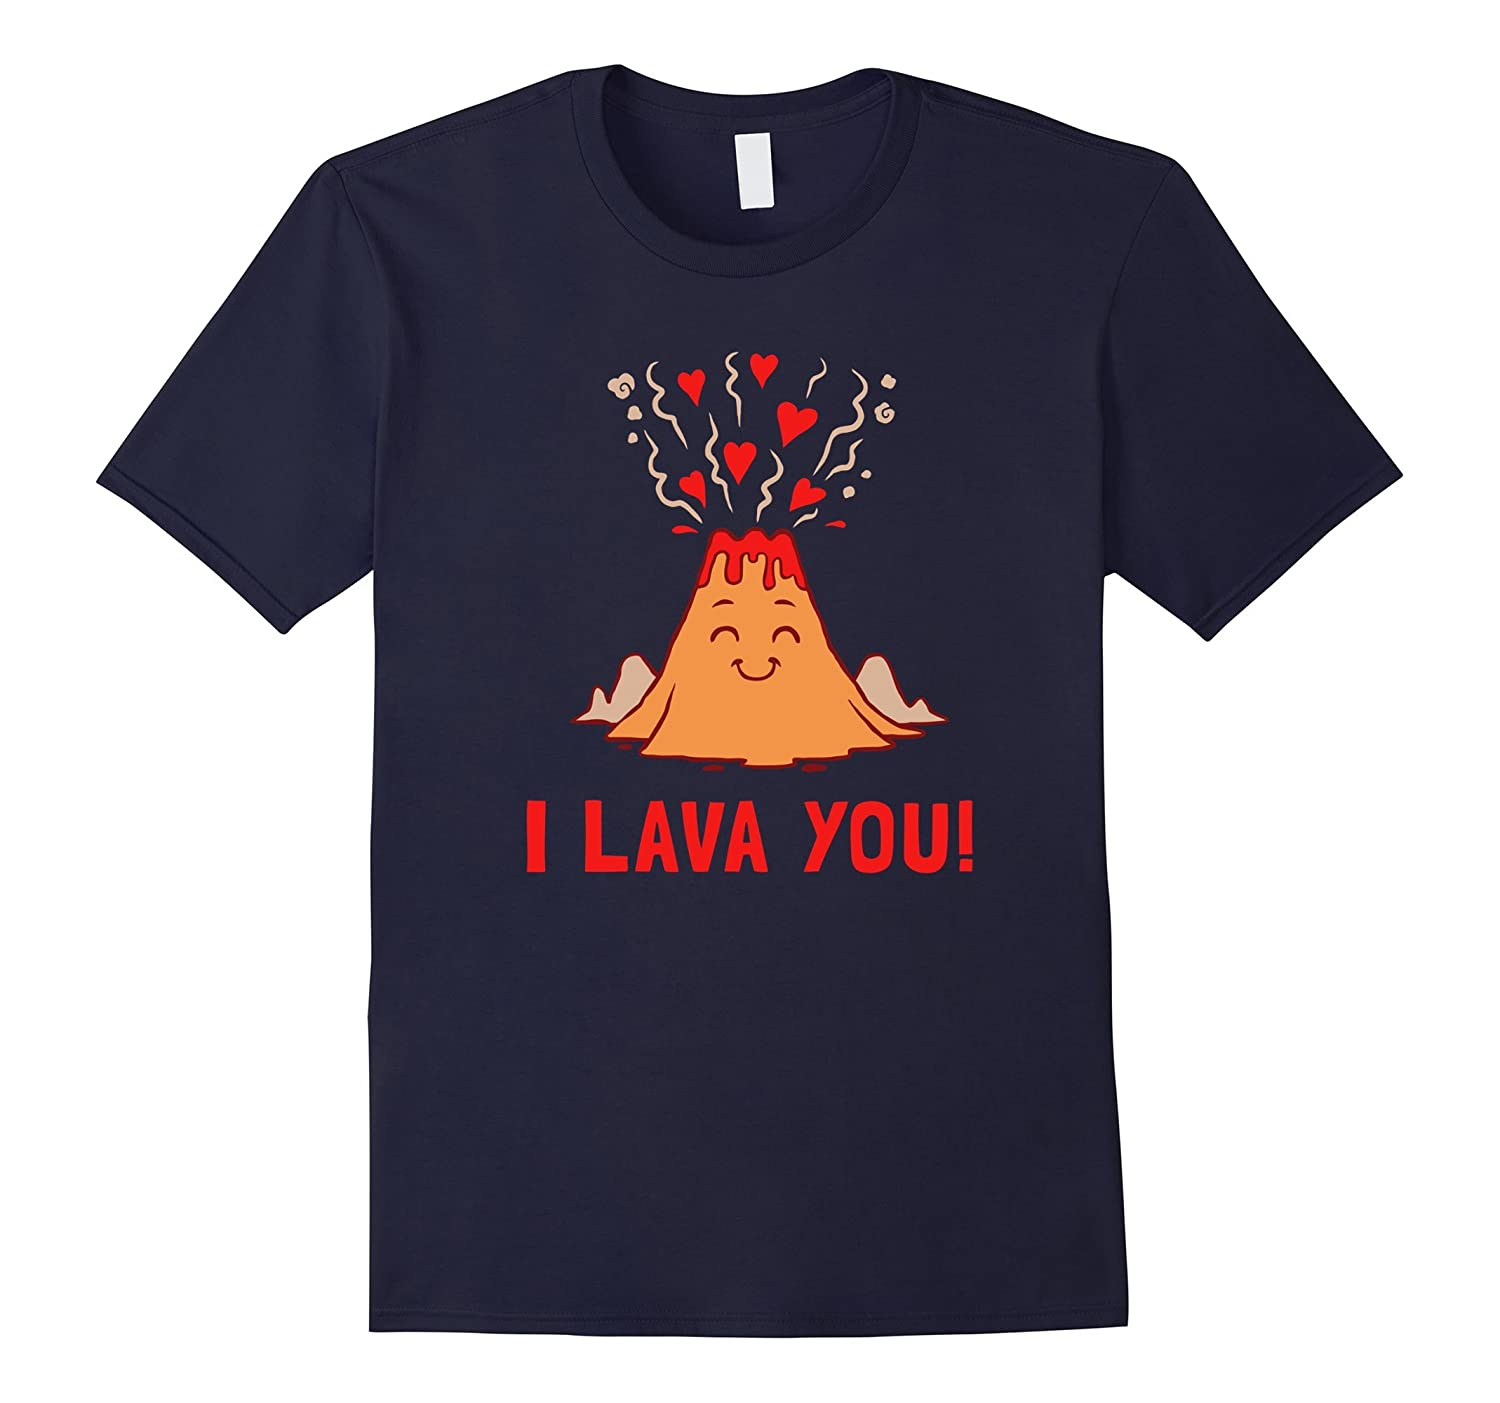 I Lava You T-Shirt - Funny Volcano Valentines Love-ah my shirt one gift